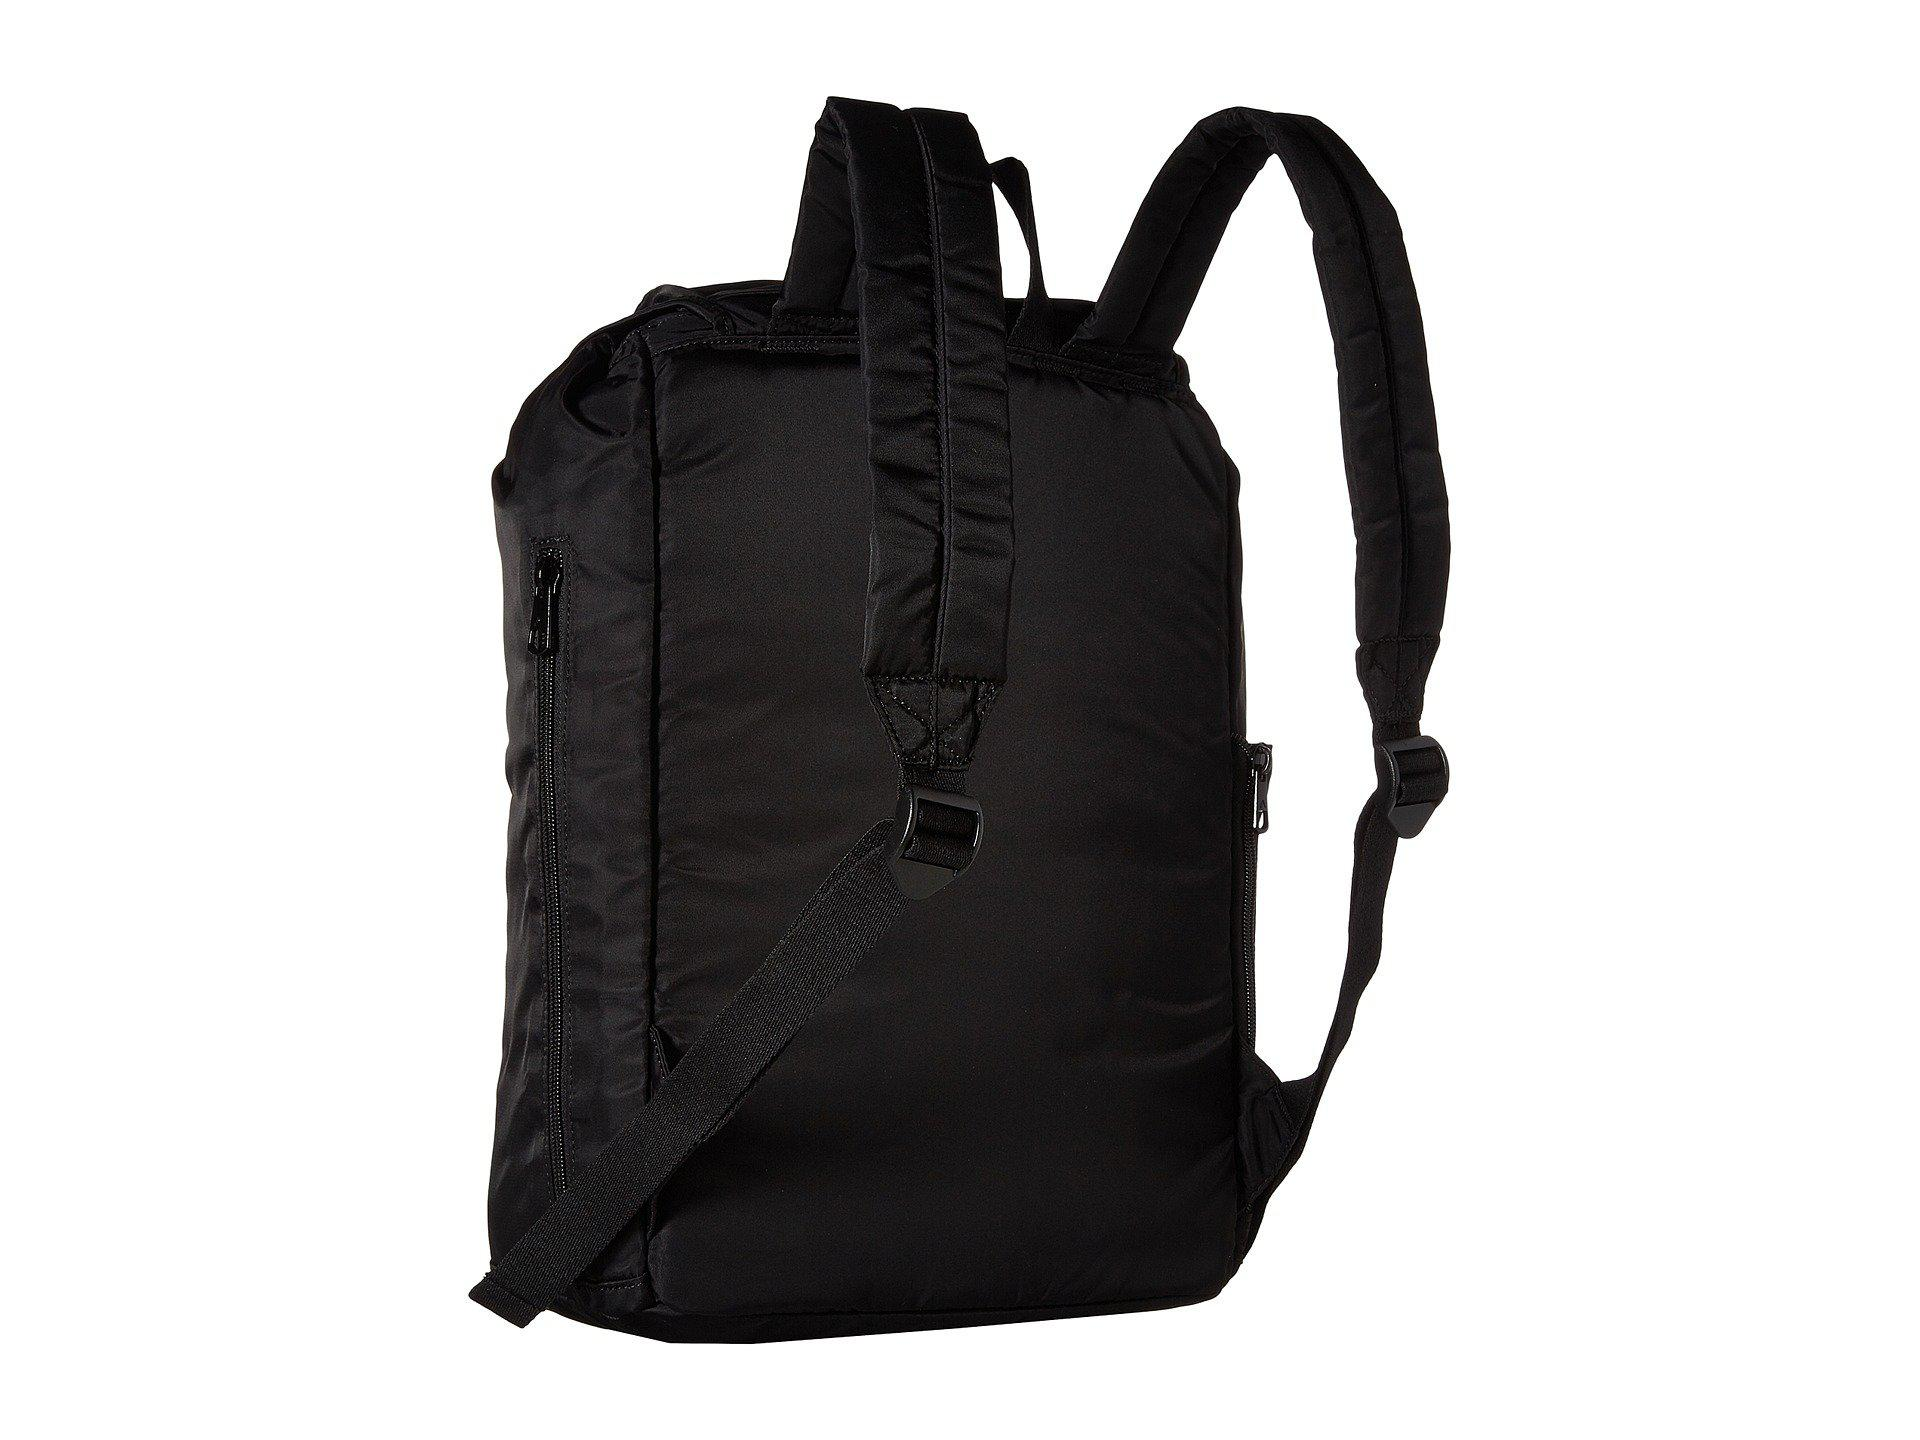 c4a307218a ... Nylon Benny Backpack (black) Backpack Bags - Lyst. View fullscreen